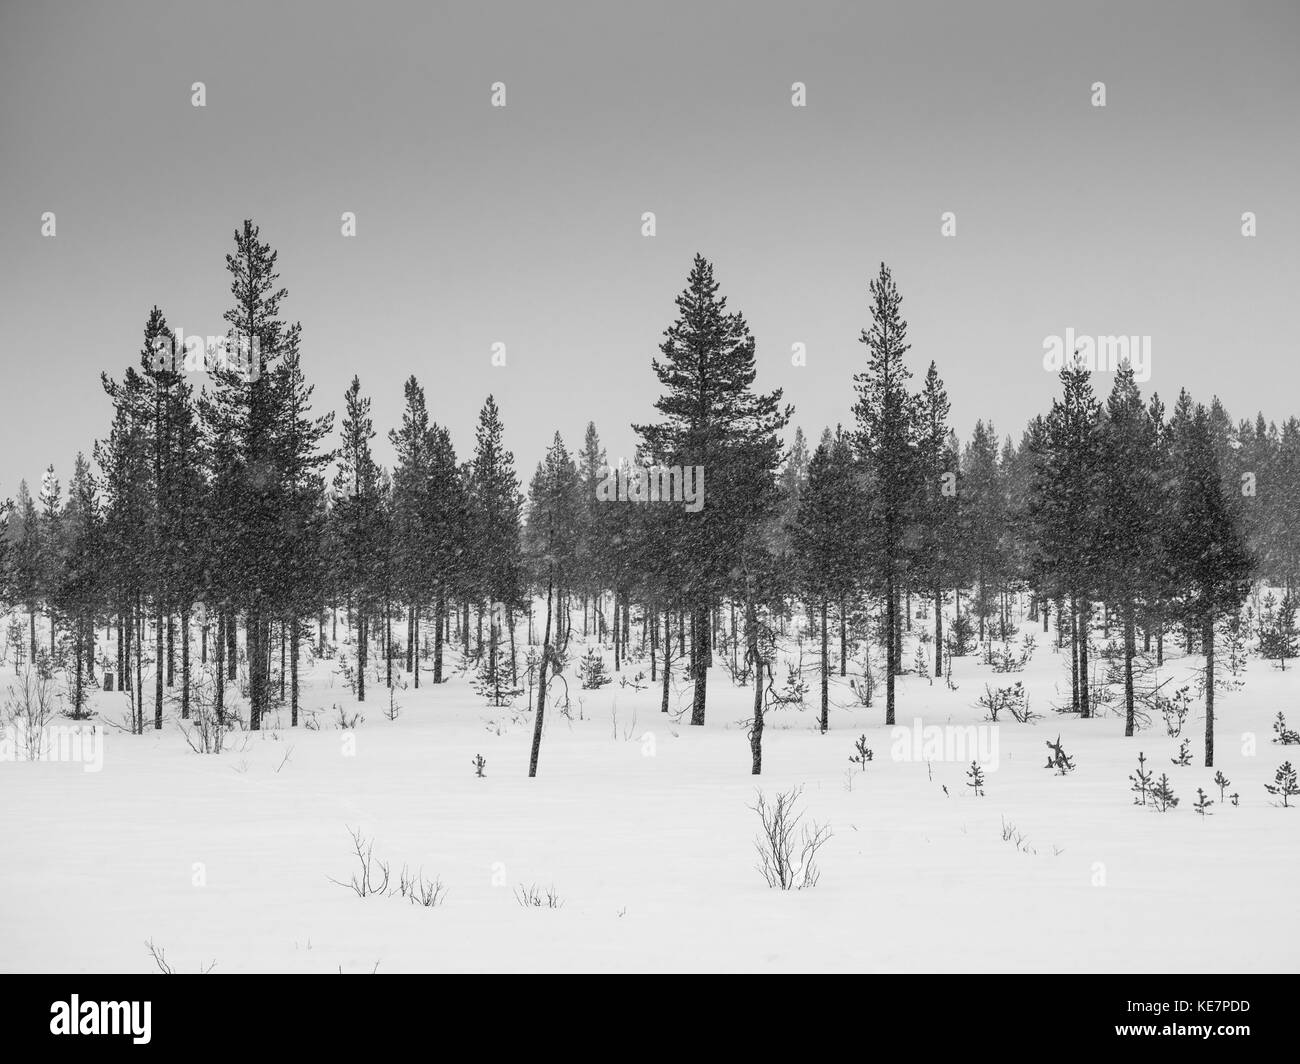 Coniferous Trees In A Snowfall; Arjeplog, Norrbotten County, Sweden - Stock Image